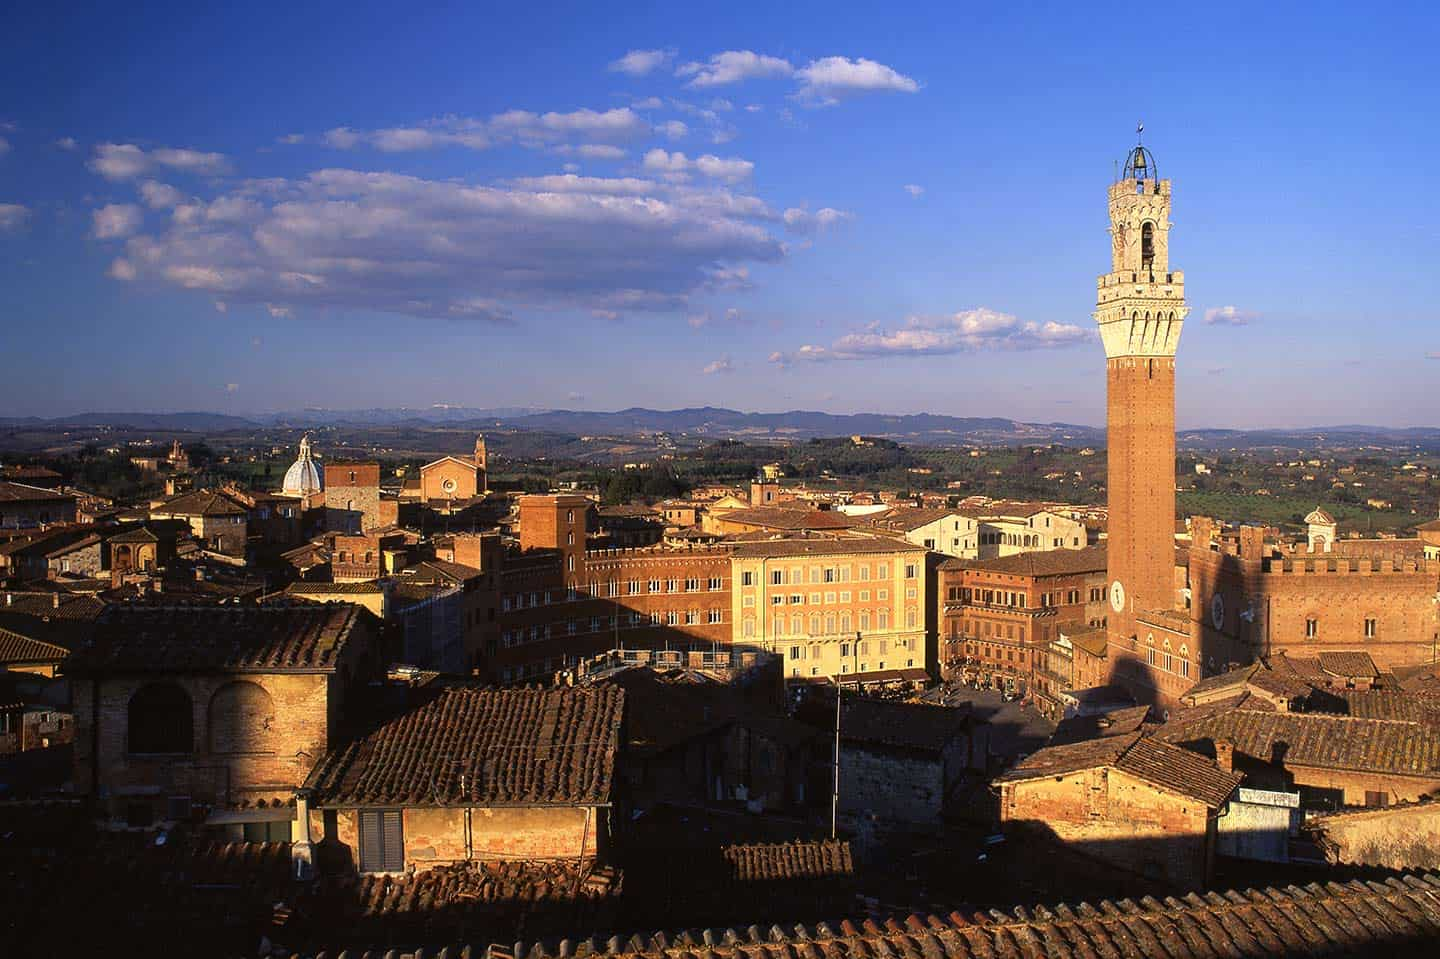 Image of Piazza del Campo and Torre del Mangia Siena Tuscany